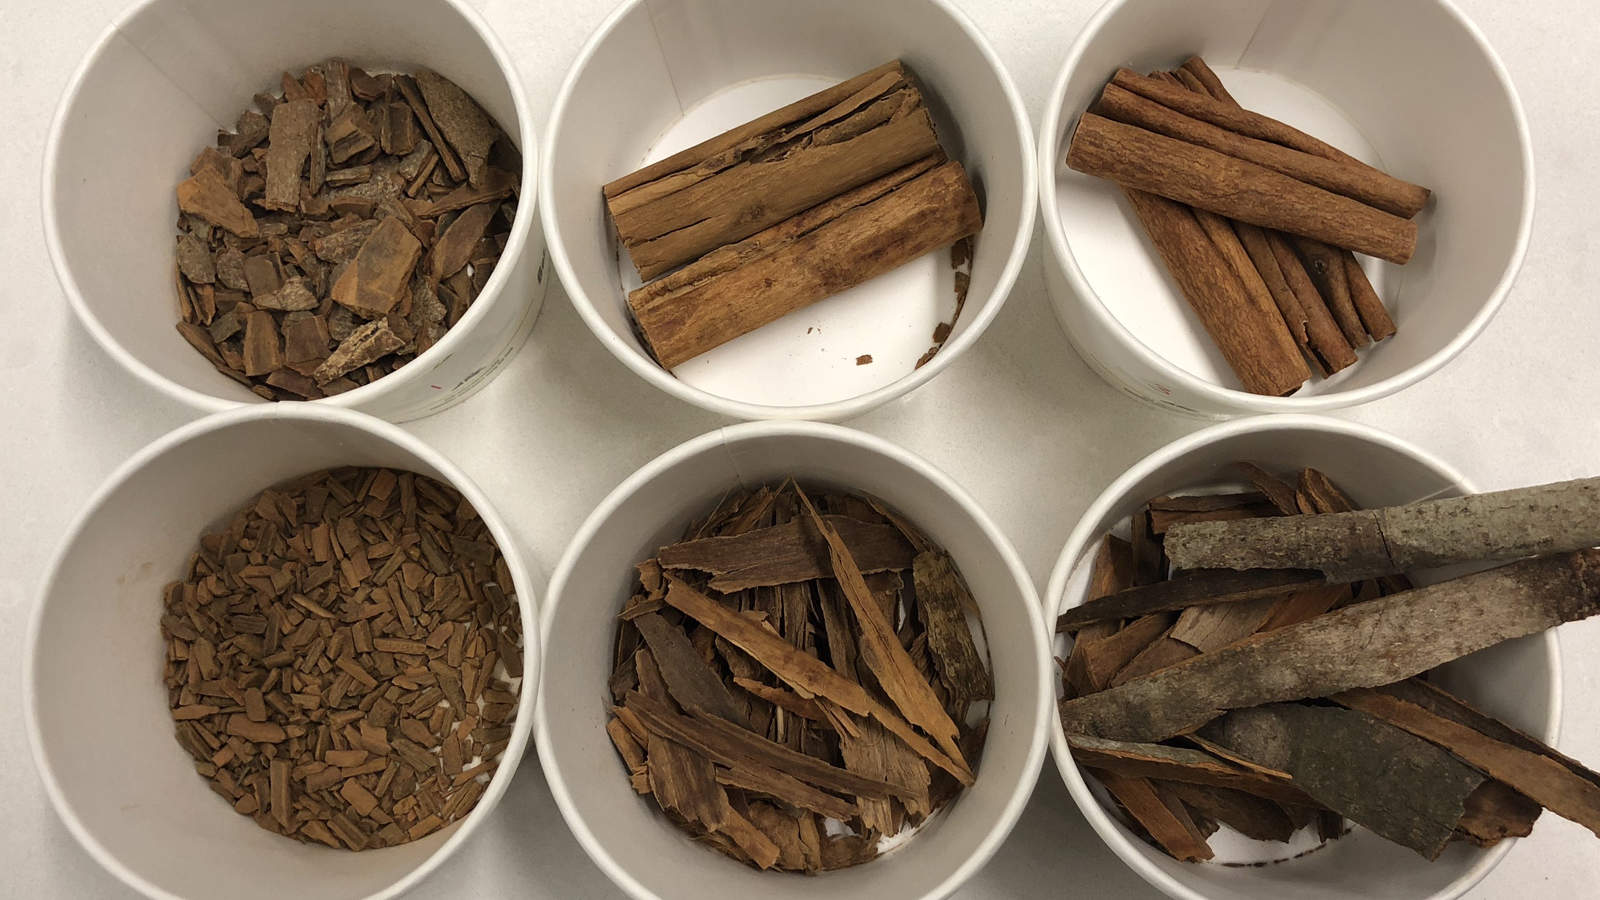 We Tried 10 Kinds of Cinnamon and This Is the Best One